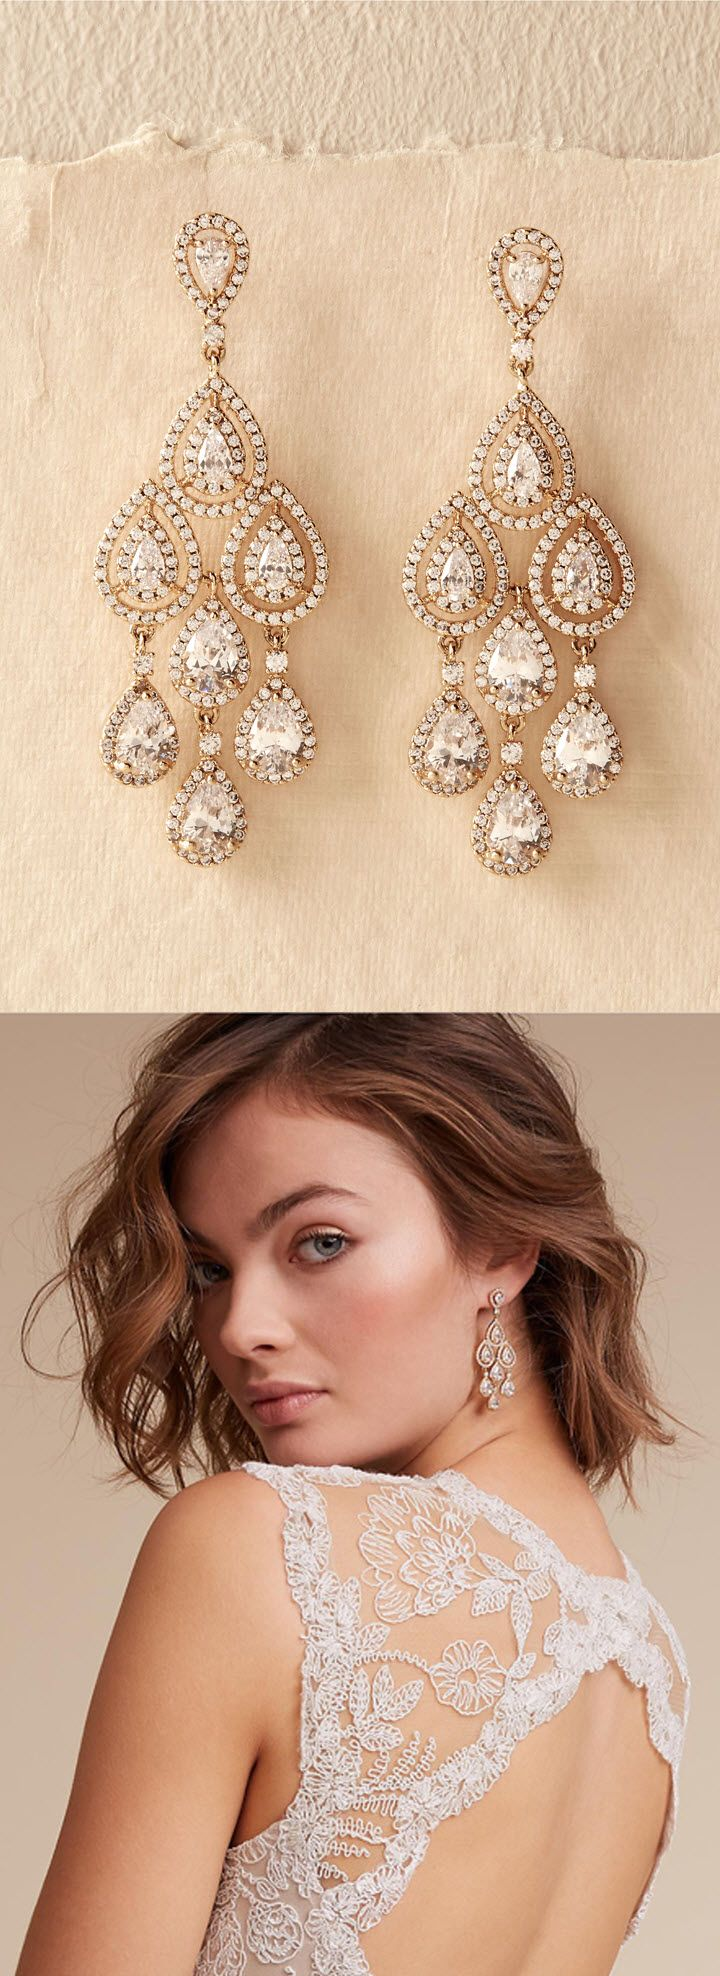 Gold Chandelier Earrings for Wedding or Special occasion